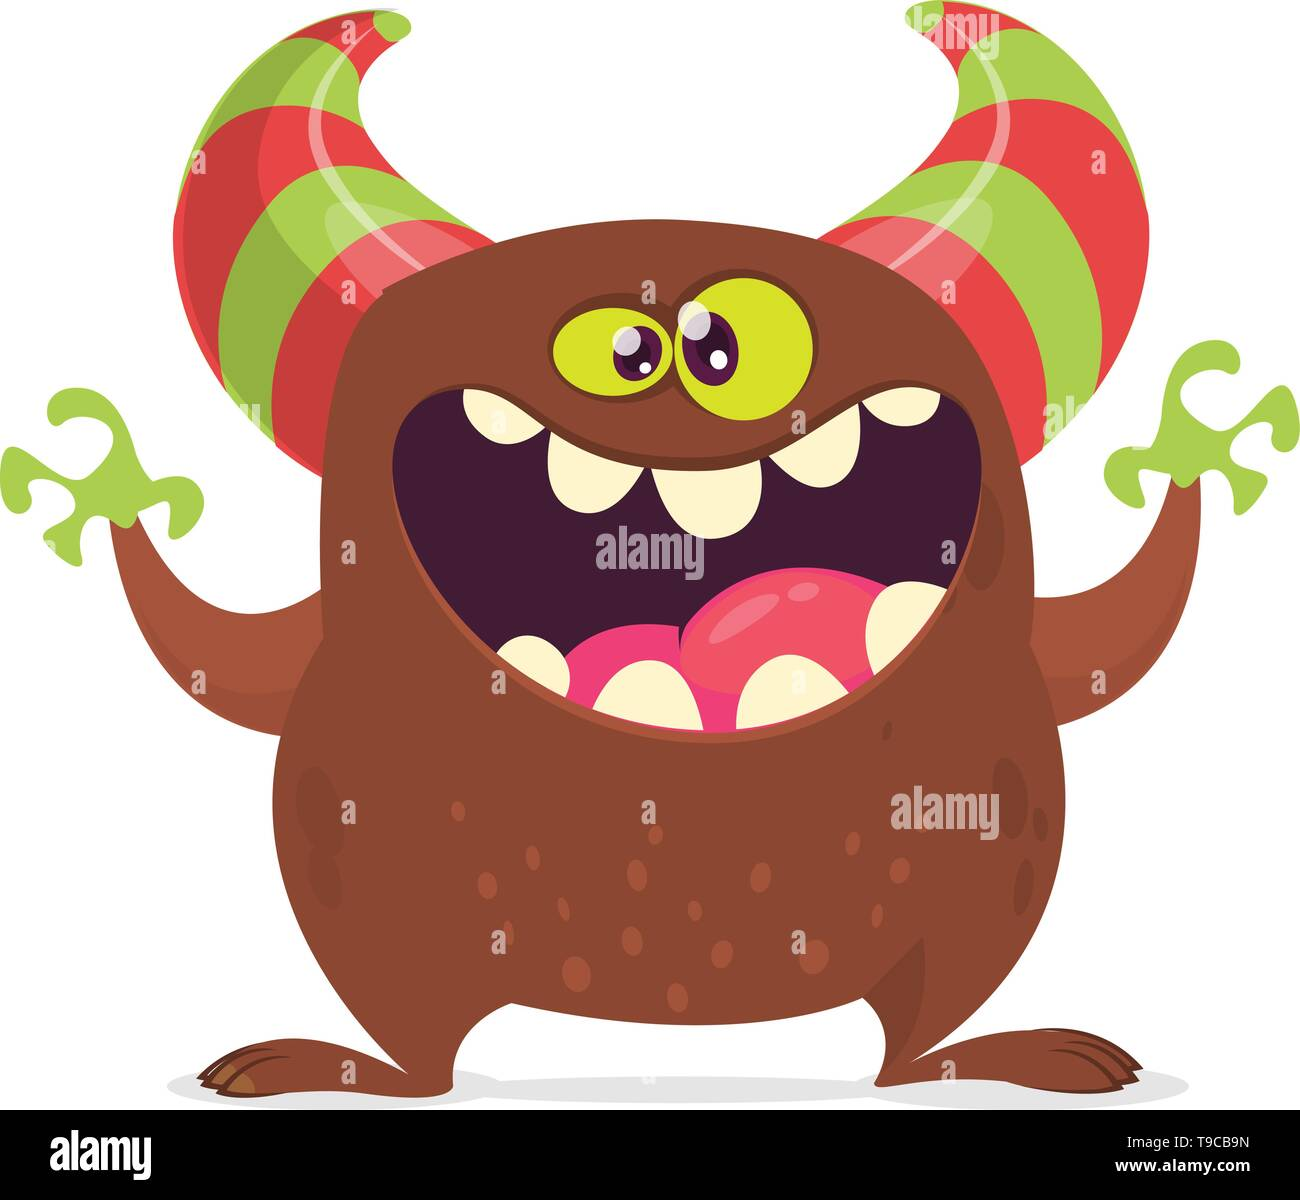 Cool cartoon monster with horns laughing. Vector brown monster character. Characters for Halloween party decoration - Stock Image